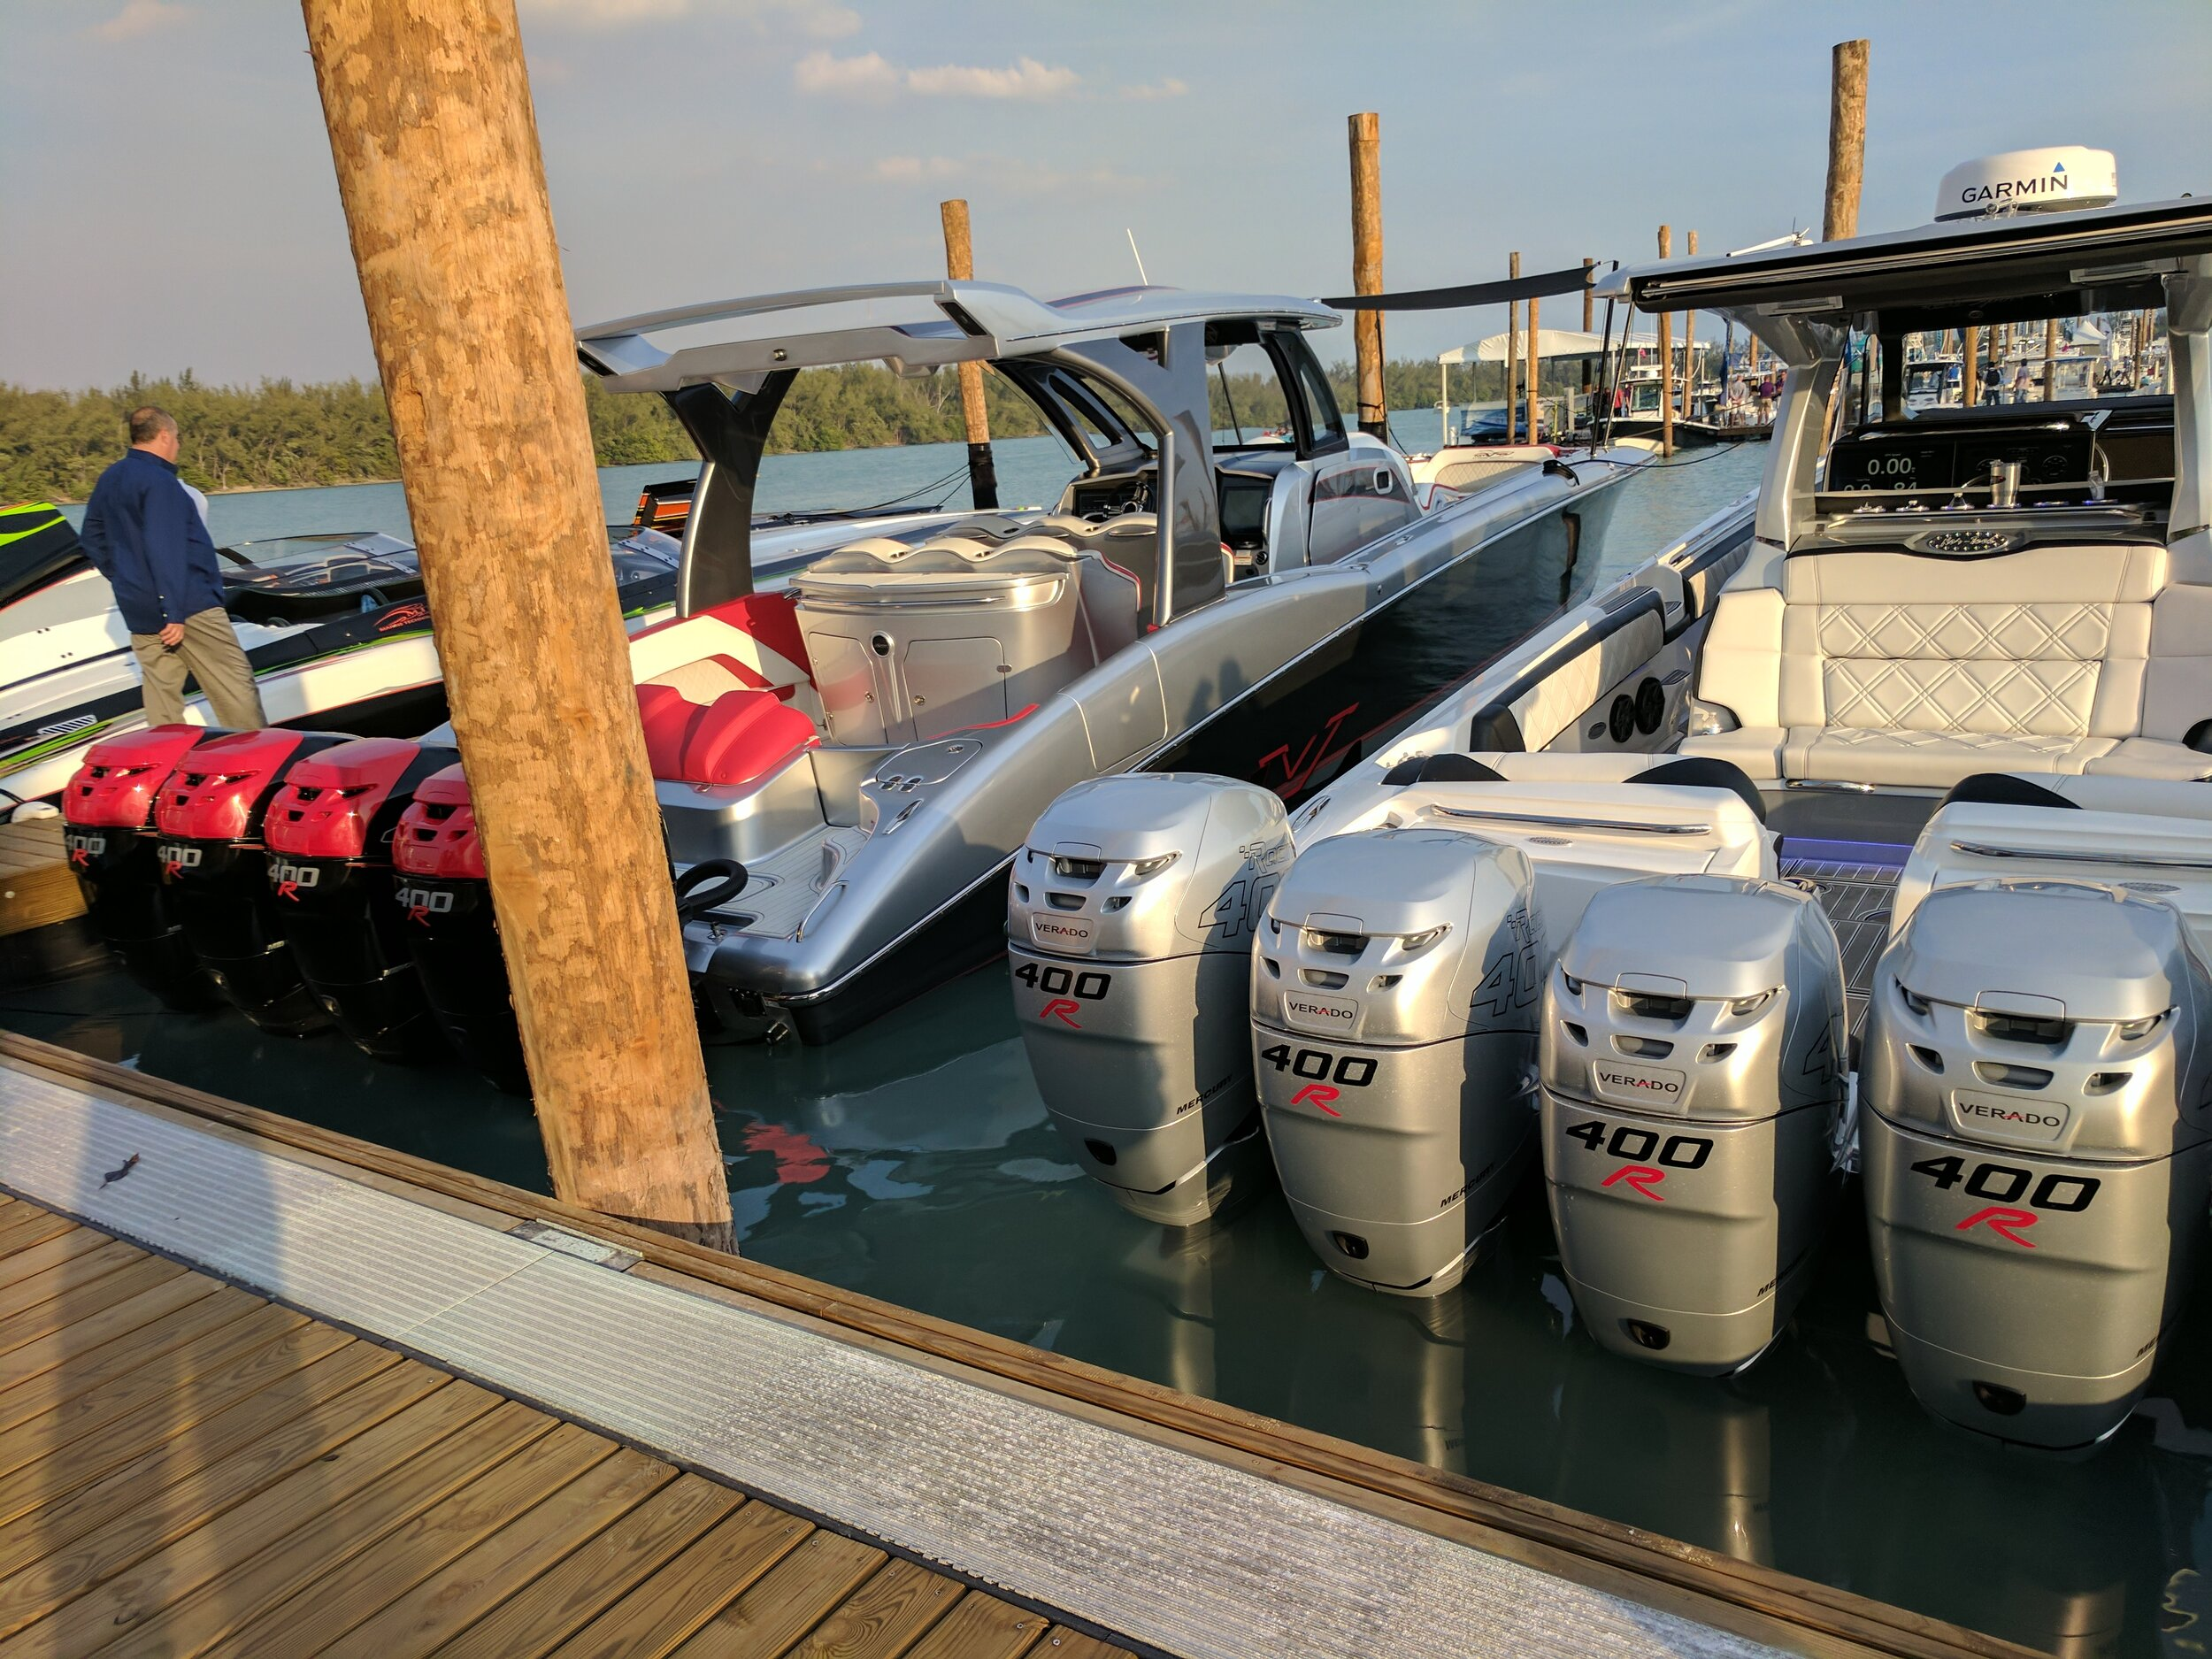 Many former offshore sport boat buyers are turning to these, but it's hard to crack 80 MPH in a giant bath tub no matter how many 400Rs are on the back. The stereos are awesome though!